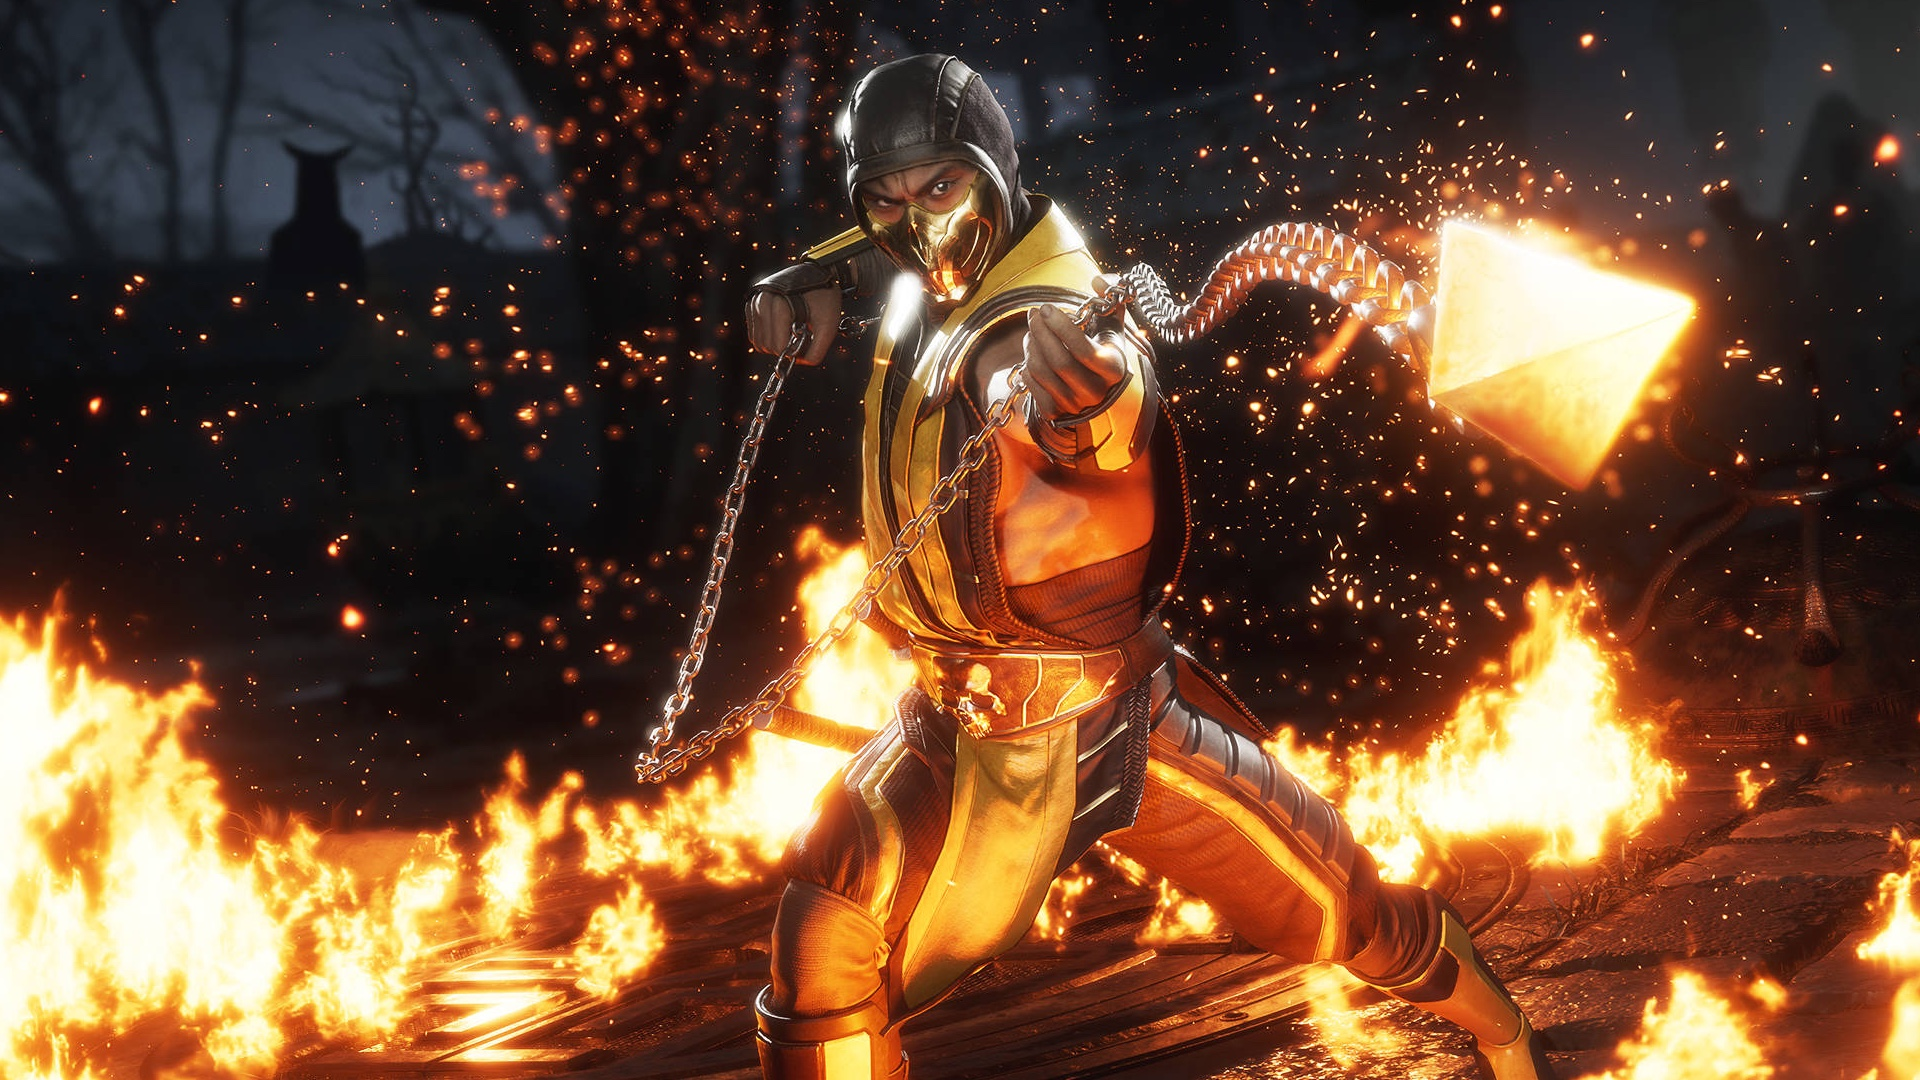 the-new-mortal-kombat-movie-will-be-rated-r-and-include-fatalities-social.jpg